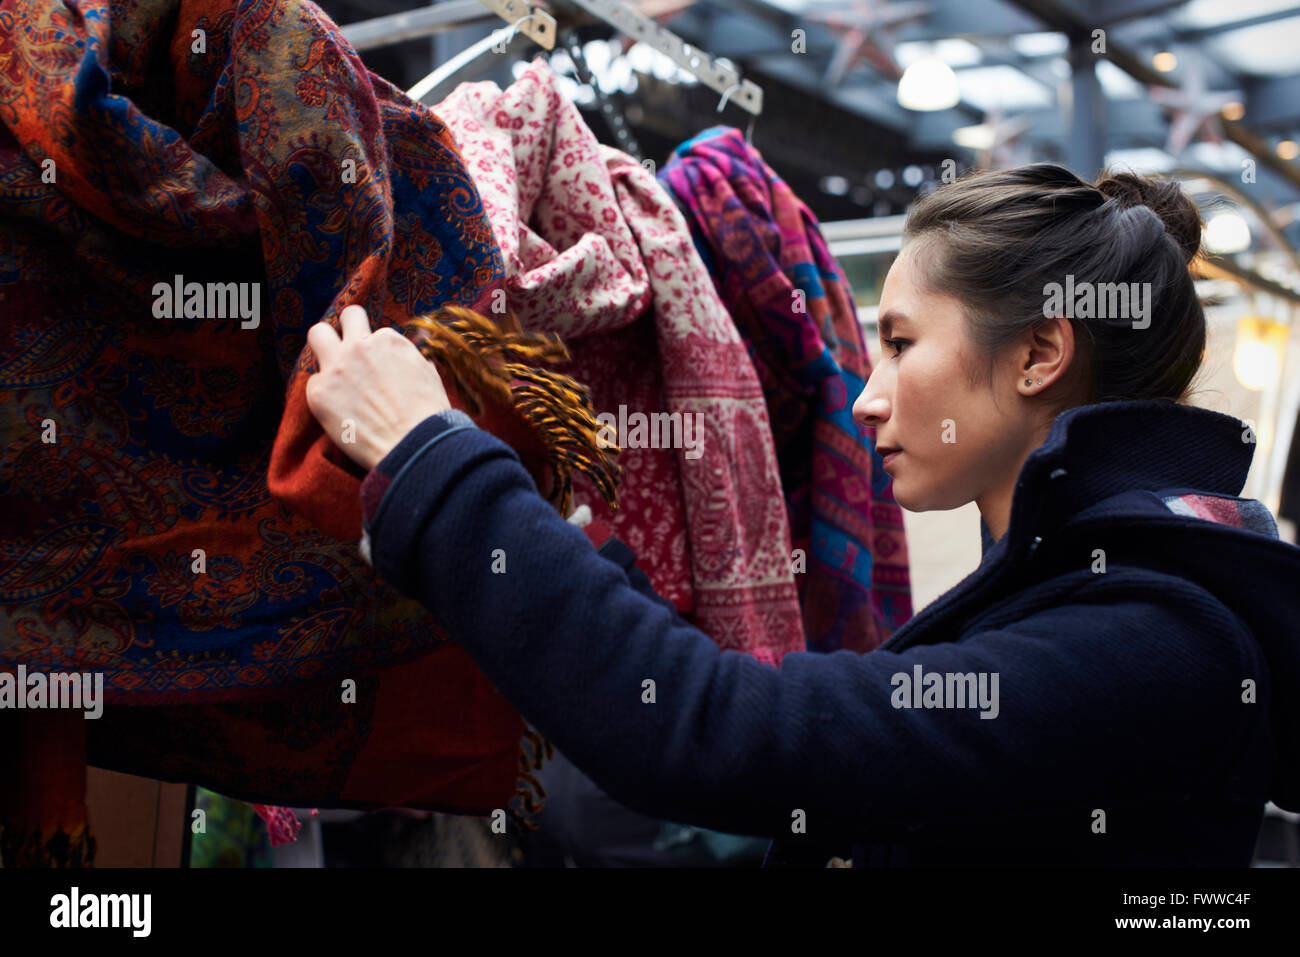 Young Woman Shopping in Marché Couvert Banque D'Images